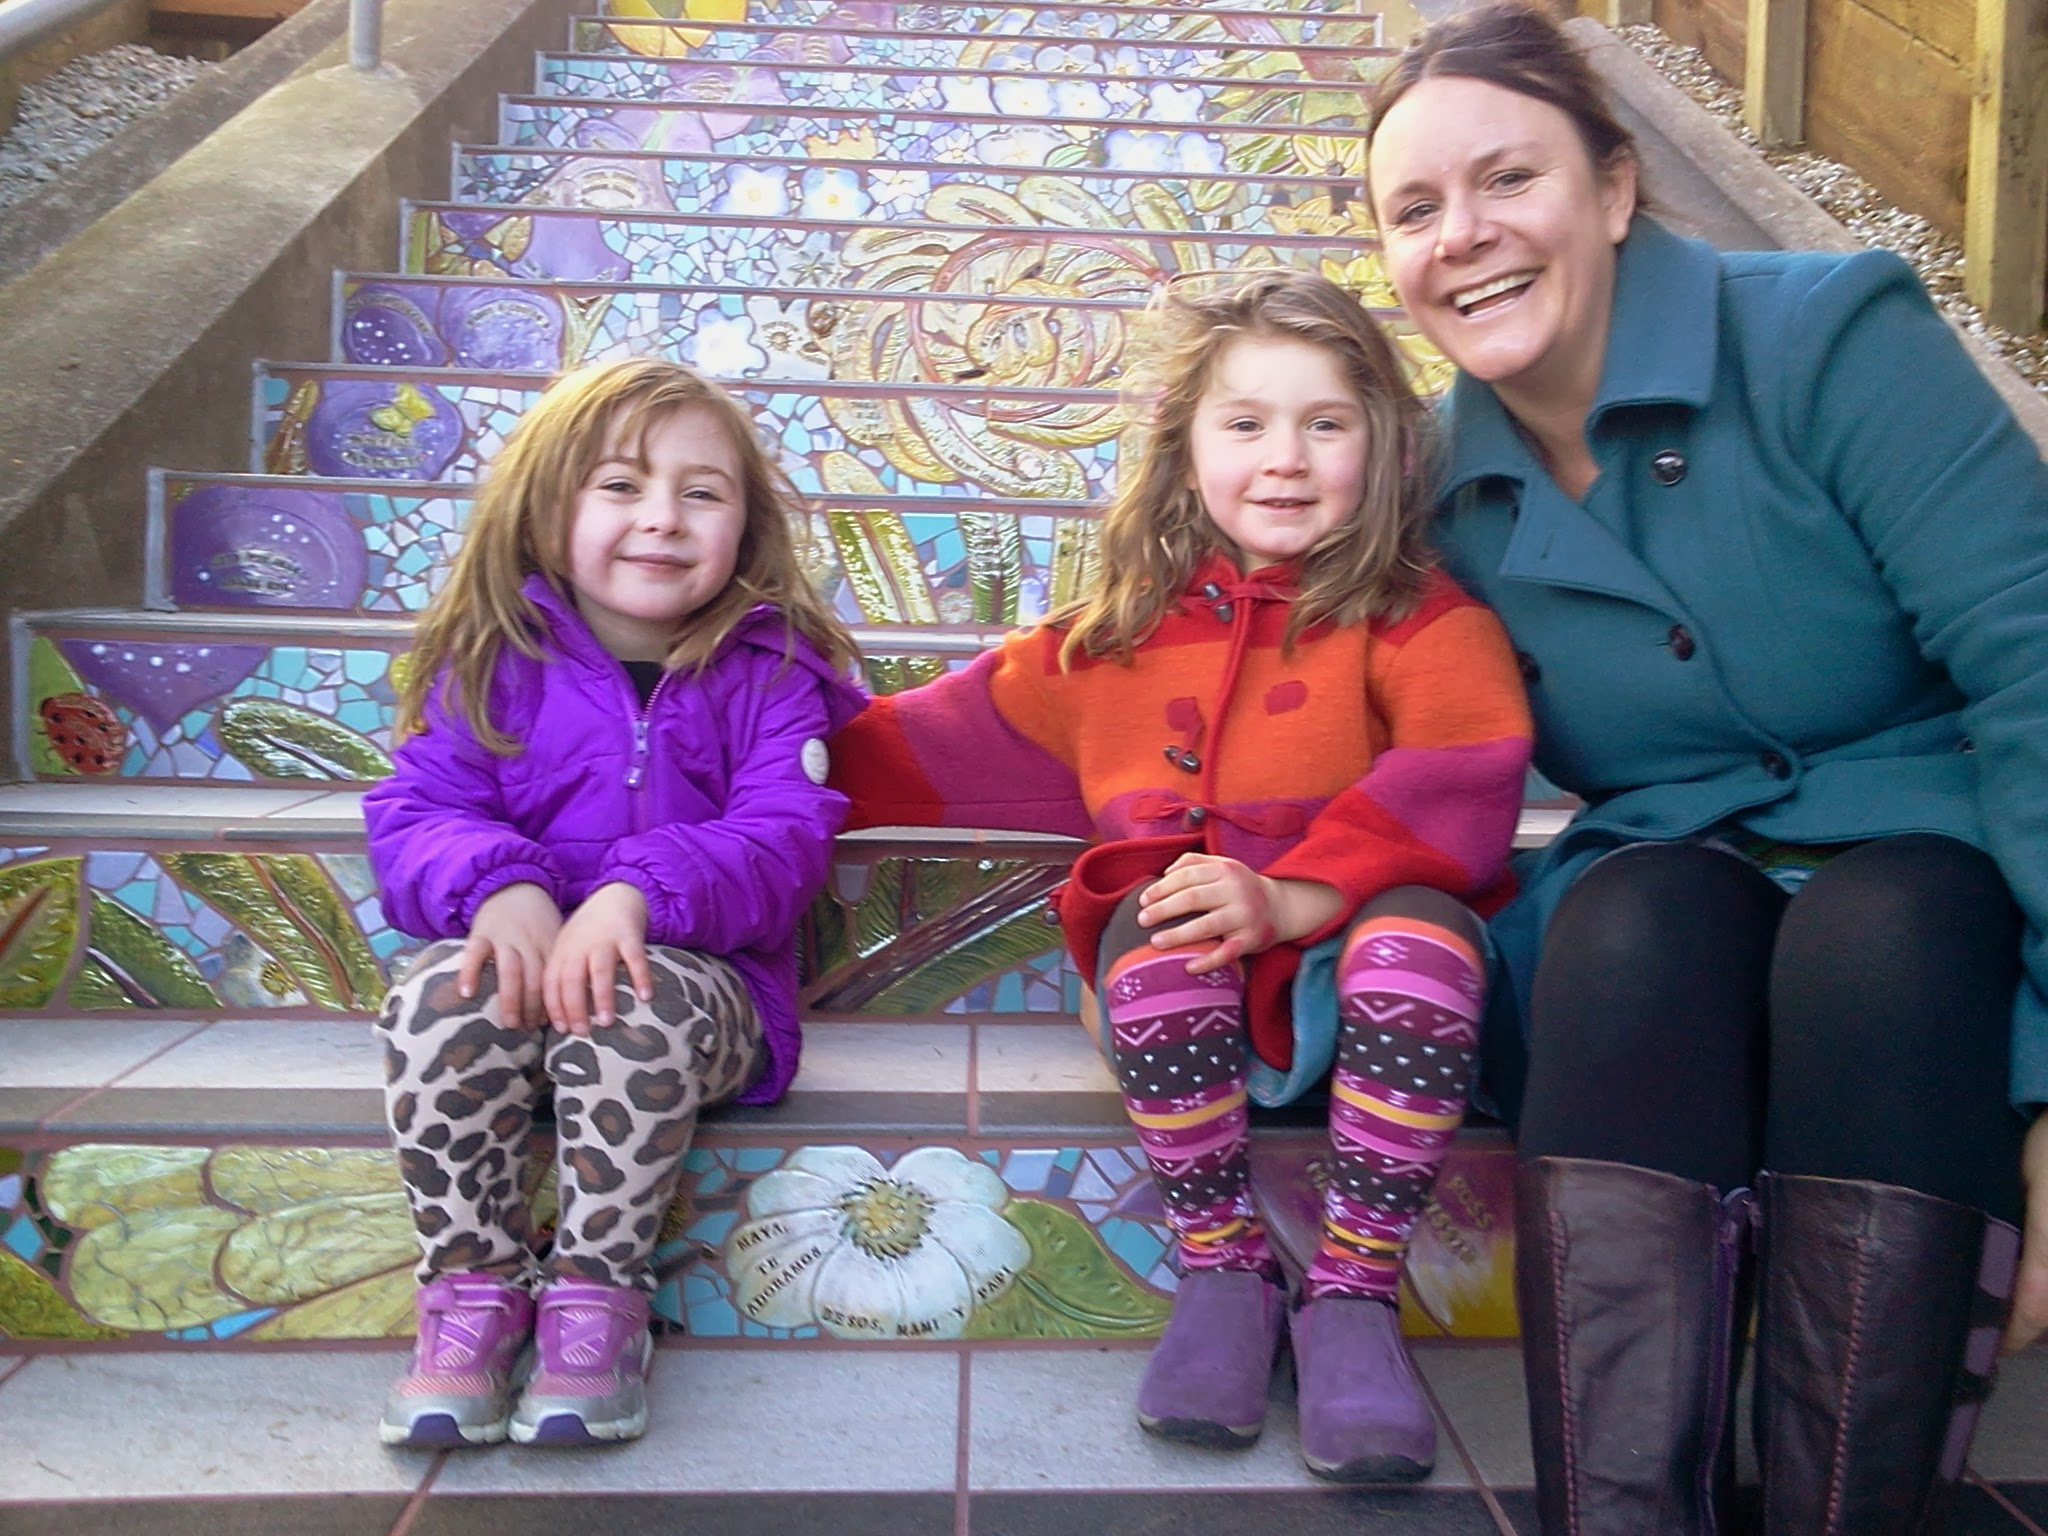 Photo: Gathering near the family tile on the Hidden Garden Steps (16th Avenue, between Kirkham and Lawton streets in San Francisco's Inner Sunset District) during the opening celebration (Saturday, December 7, 2013)  For more information about the Steps, please visit our website (http://hiddengardensteps.org), view links about the project from our Scoopit! site (http://www.scoop.it/t/hidden-garden-steps), or follow our social media presence on Twitter (https://twitter.com/GardenSteps), Facebook (https://www.facebook.com/pages/Hidden-Garden-Steps/288064457924739) and many others.